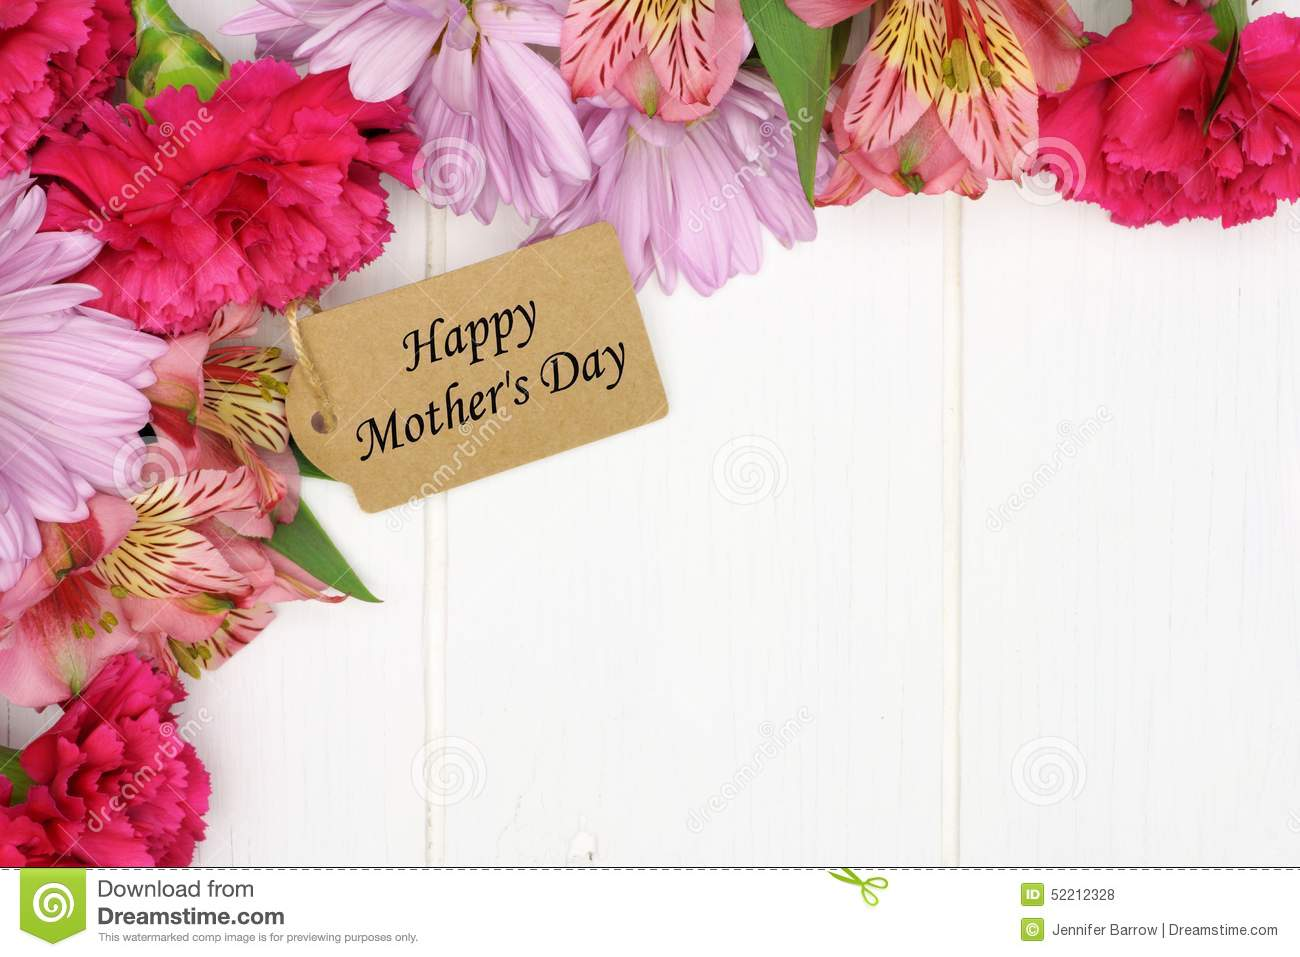 Mothers day gift tag with flower corner border on white wood mother s day gift tag with flower corner border on white wood sciox Choice Image